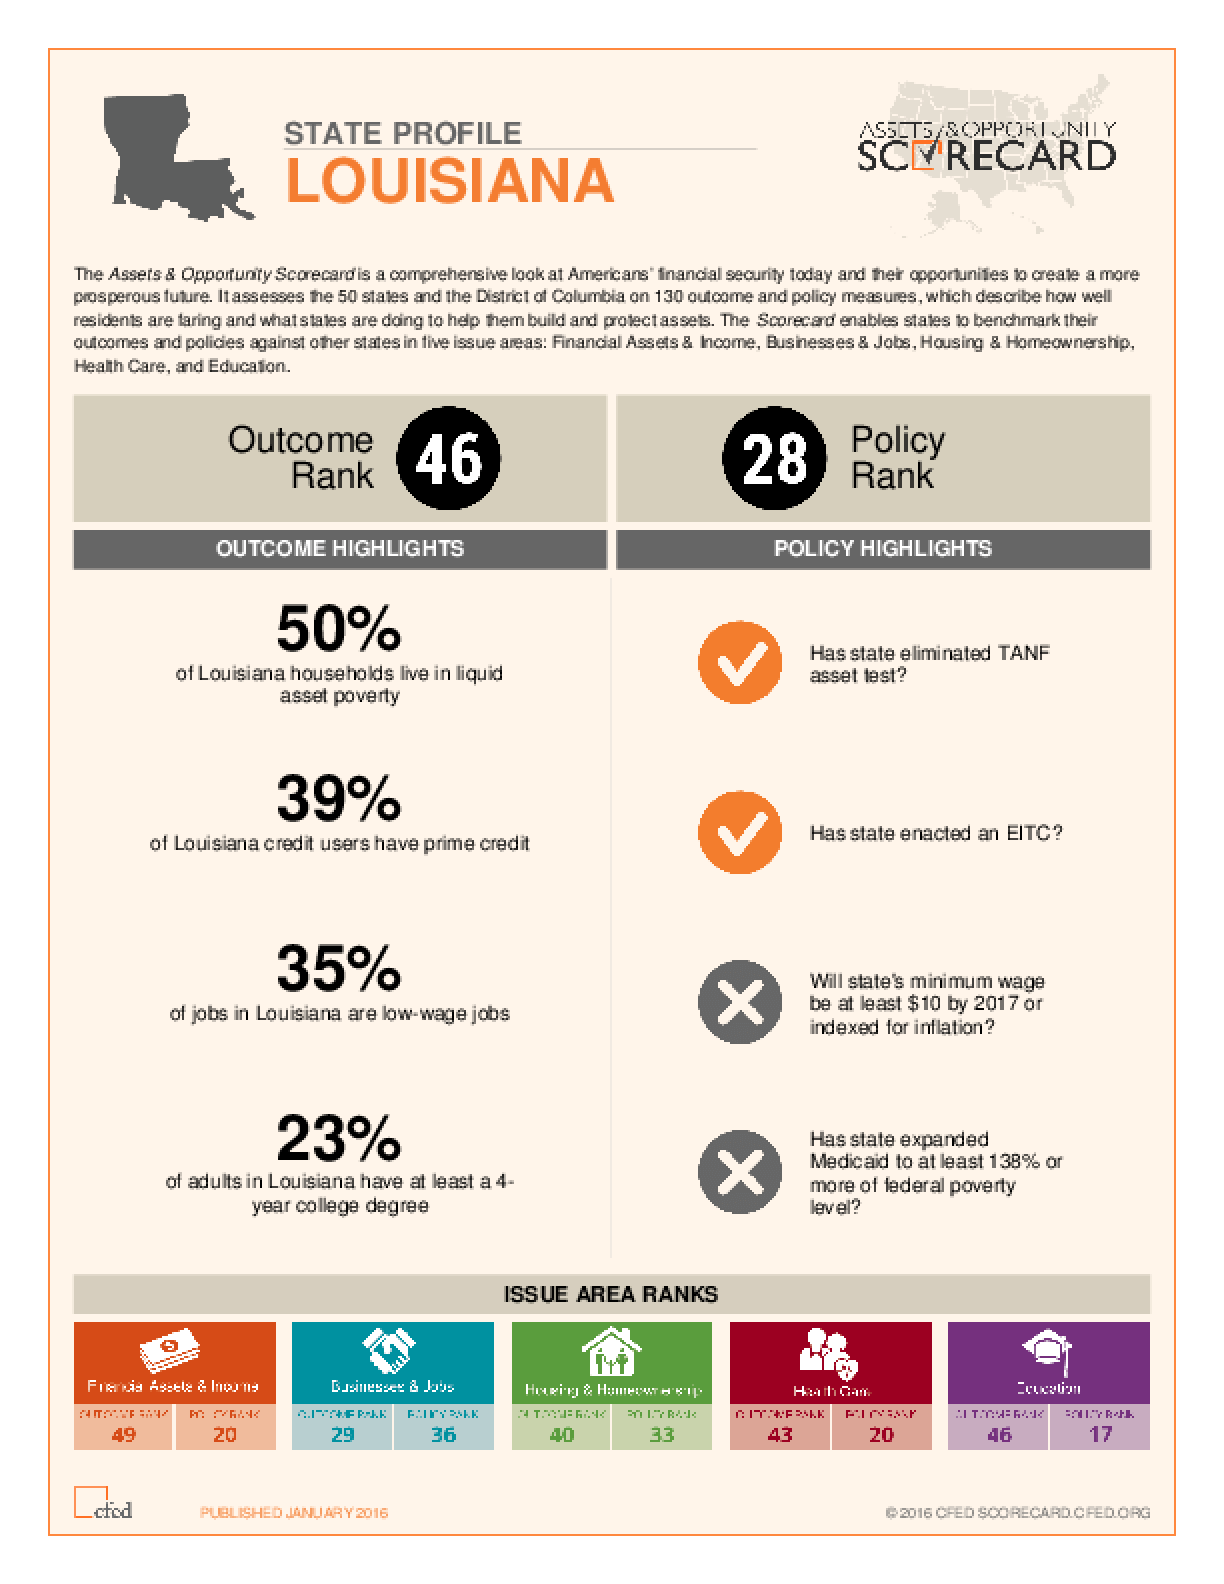 State Profile Louisiana: Assets and Opportunity Scorecard